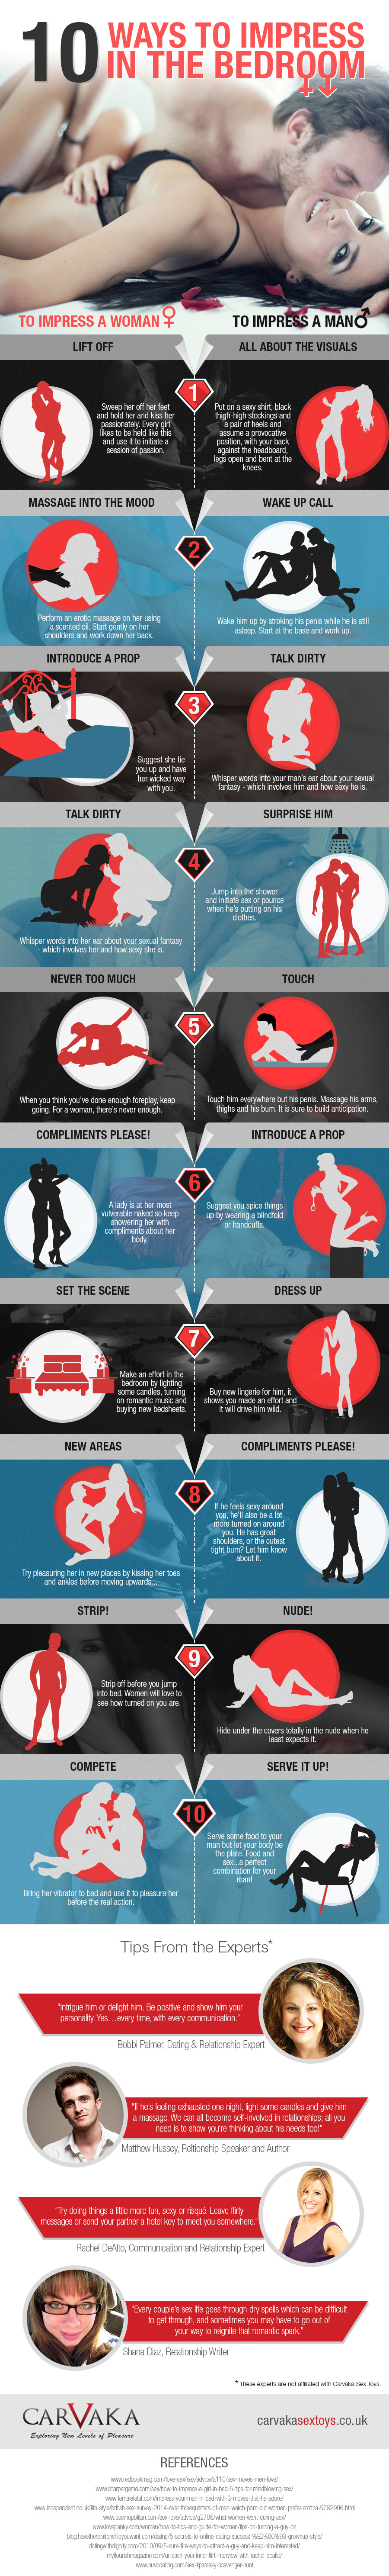 Ways-to-impress-in-bedroom-infographic